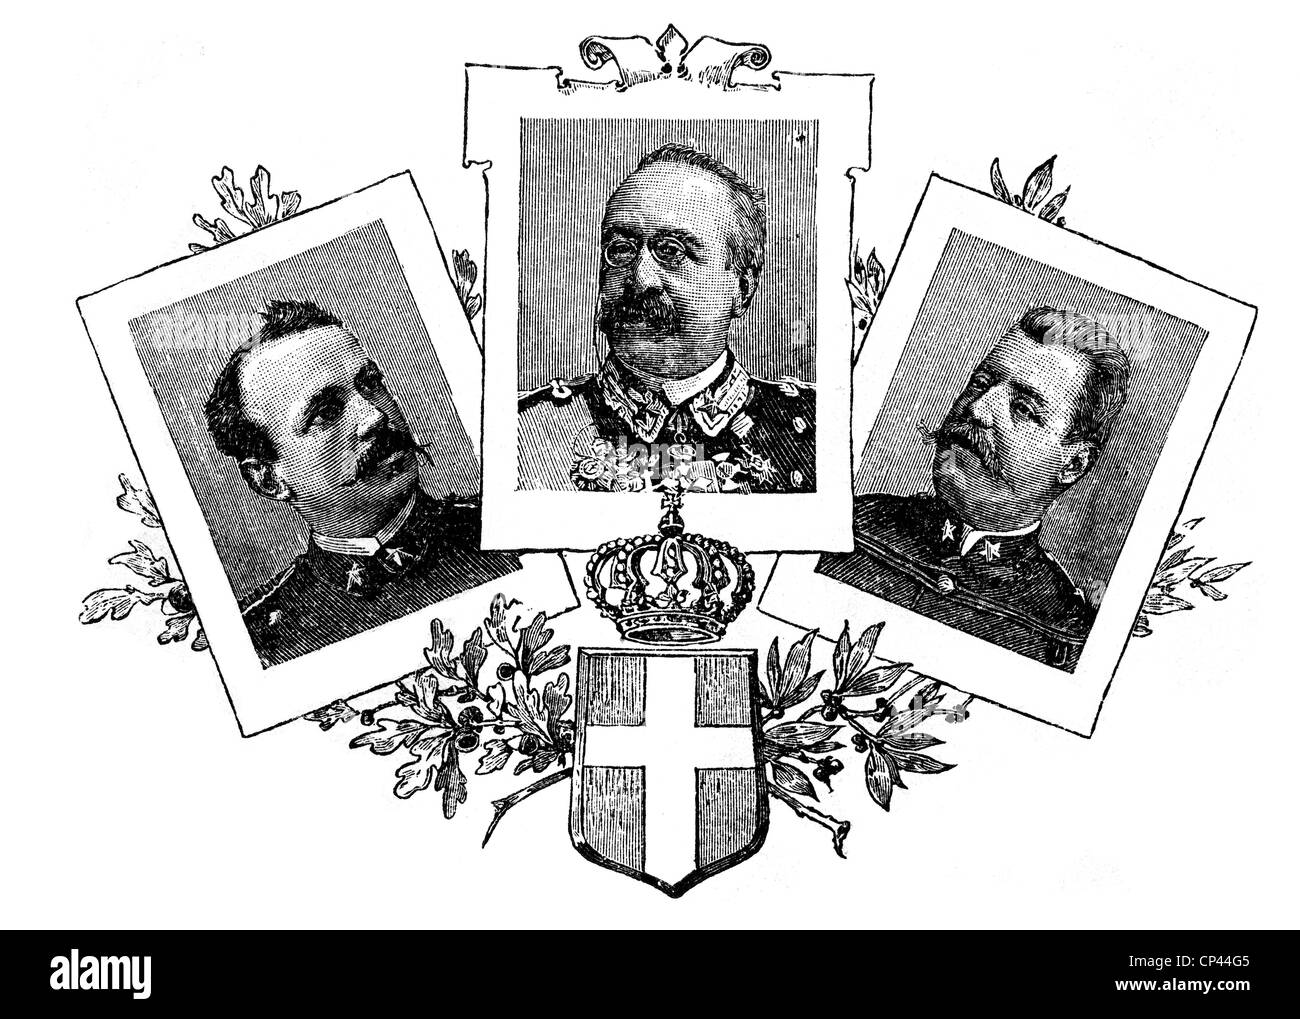 Baratieri, Oreste, 13.11.1841 - 8.8.1901, Italian general, portrait, with portraits of two other officers who took - Stock Image